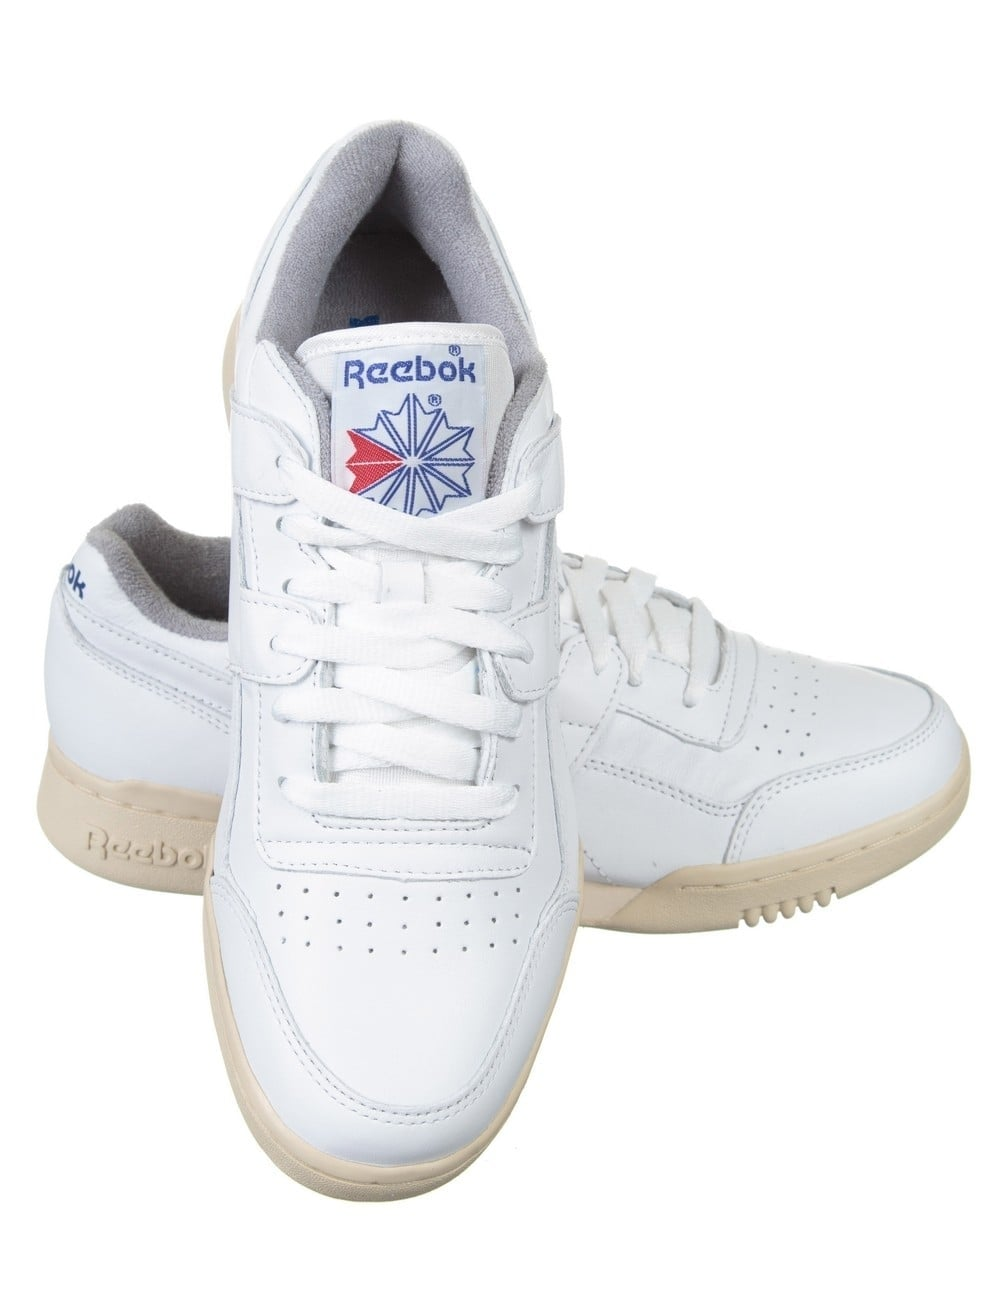 7cd9ce83e3b Reebok Workout Plus Shoes White Royal Grey Sand Footwear From